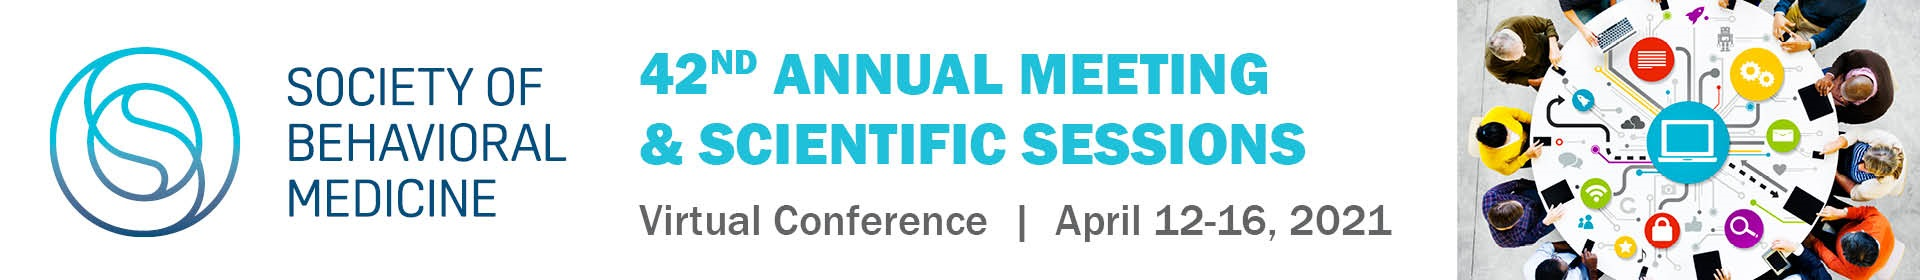 2021 Annual Meeting & Scientific Sessions Event Banner